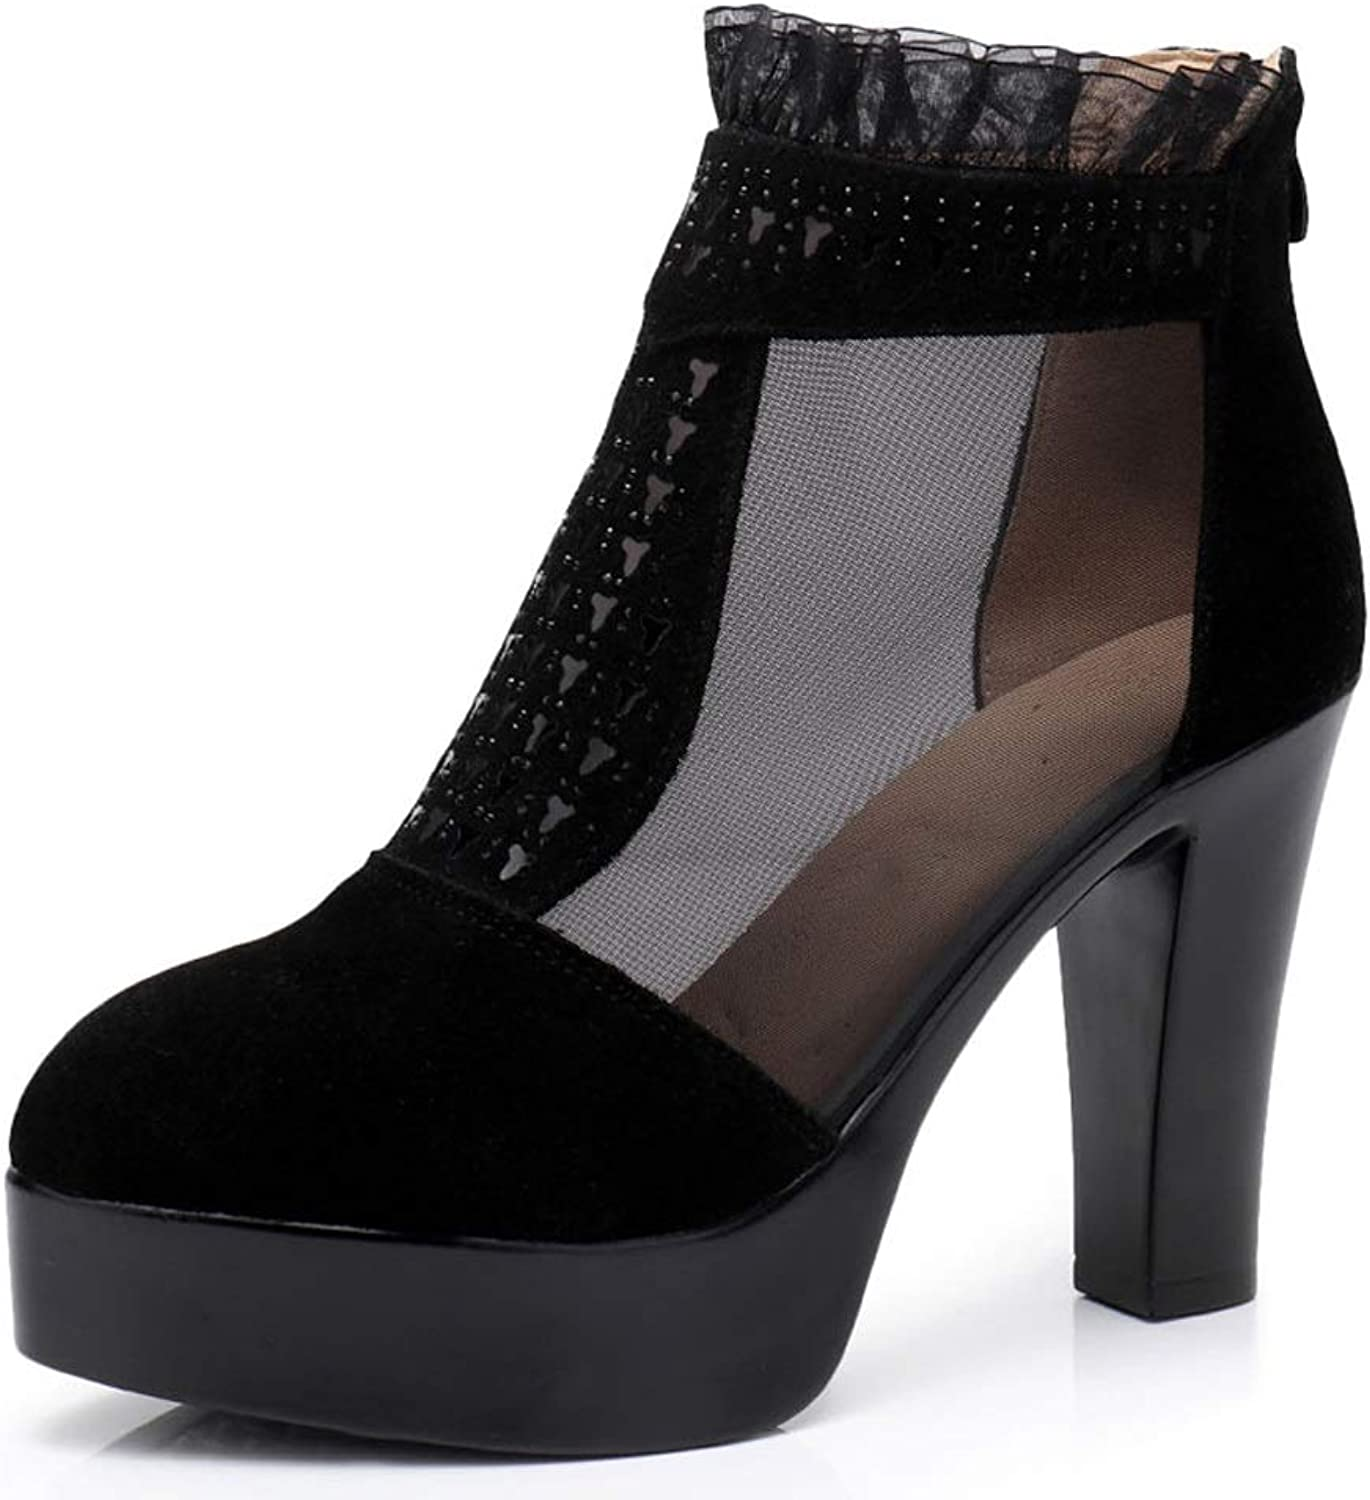 TARSHIN Single shoes Spring and Autumn Hollow High Heel Lace Nubuck Leather Mesh Boots